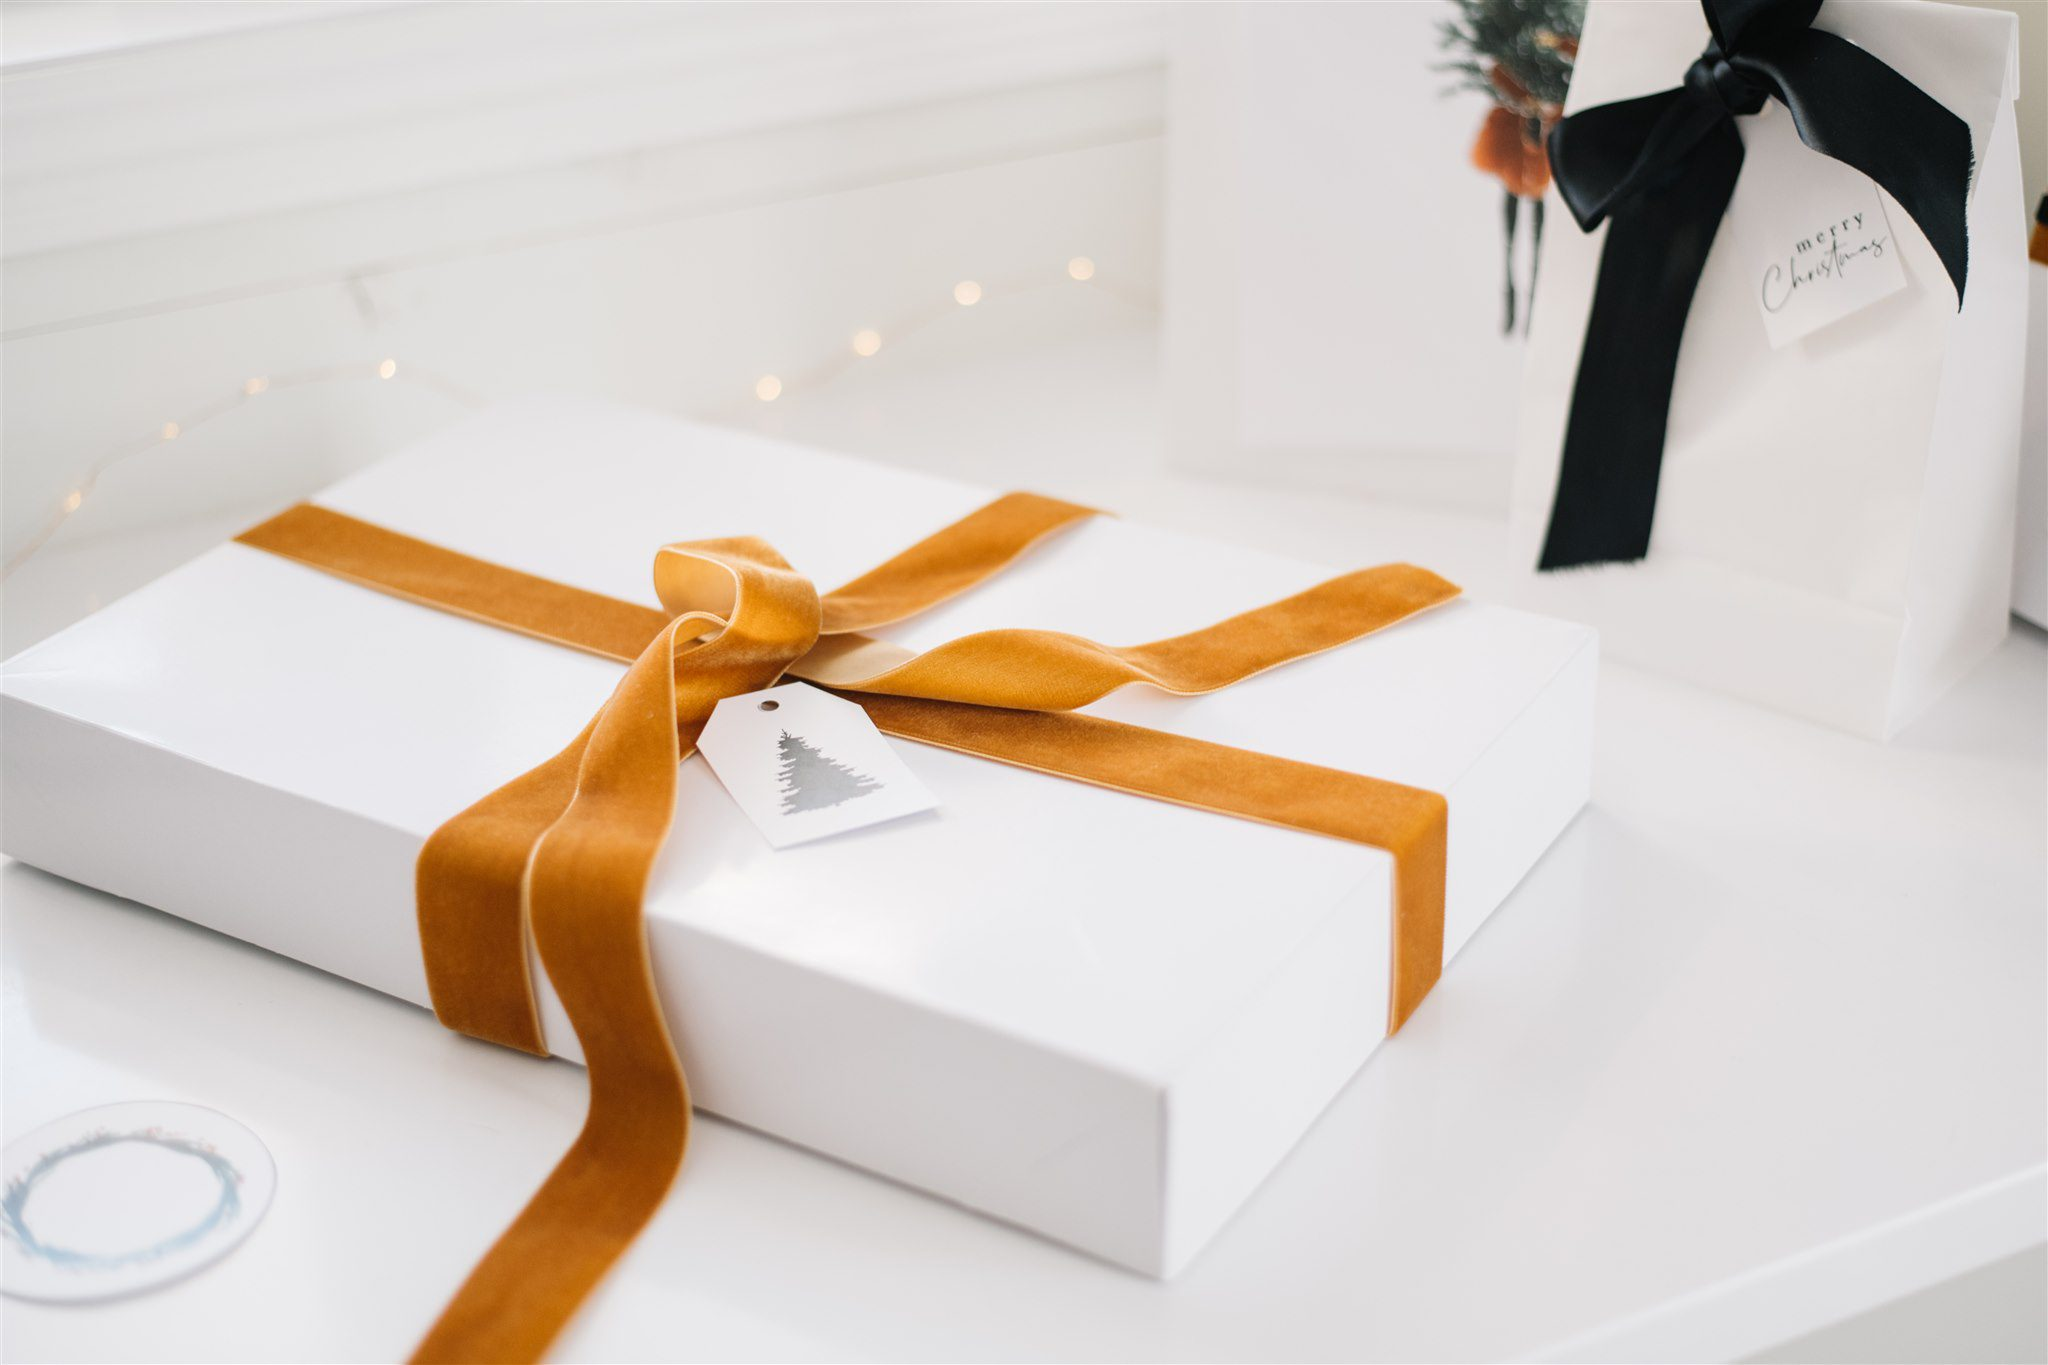 Minimalist gift wrapping